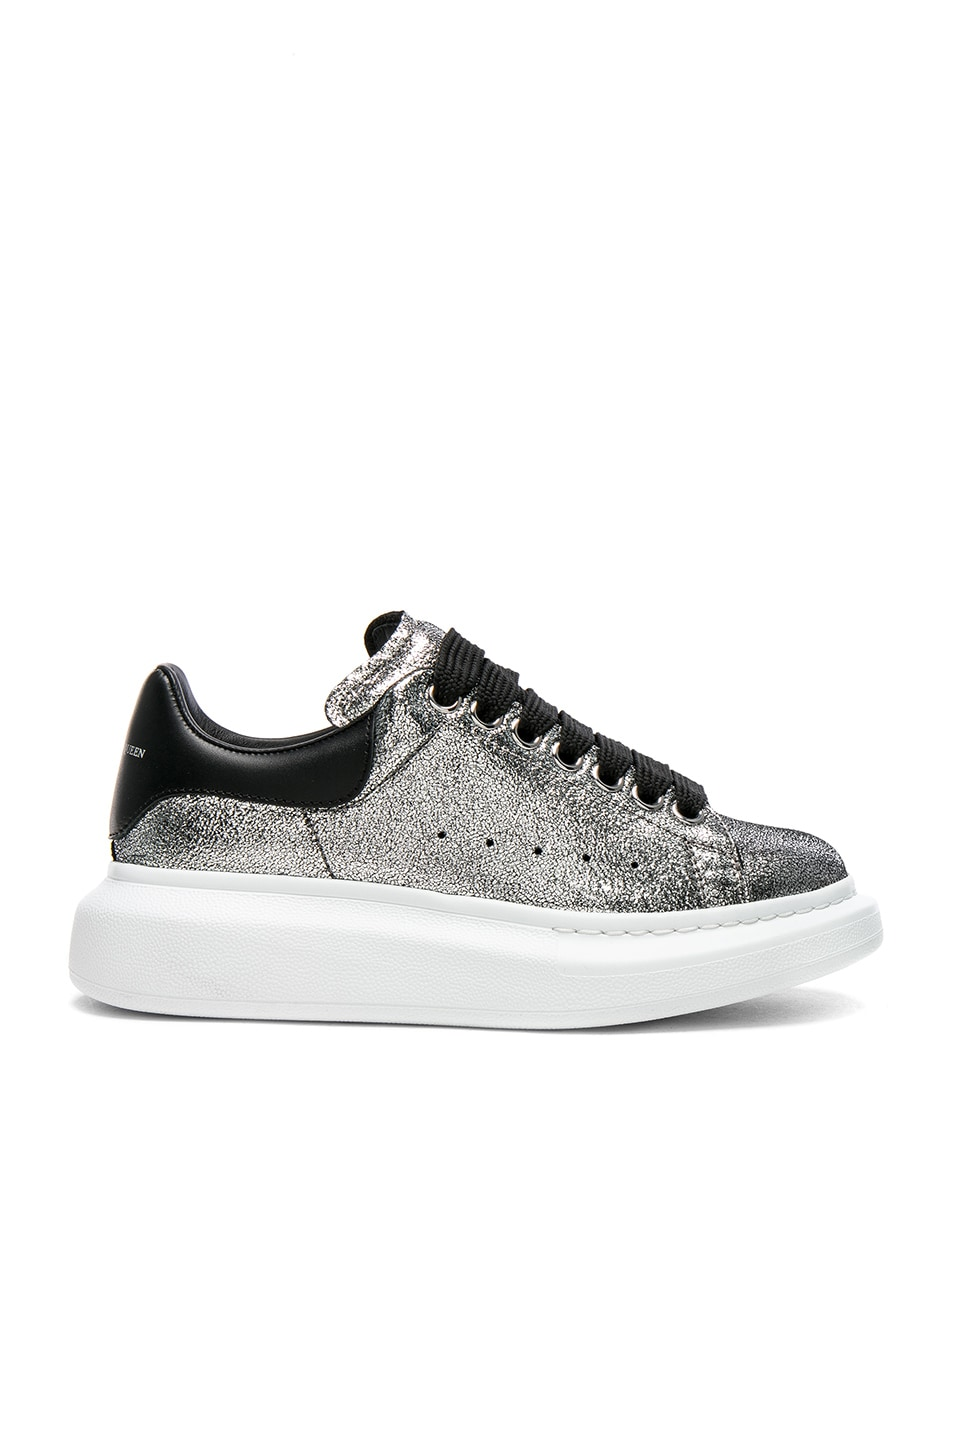 Image 1 of Alexander McQueen Platform Lace Up Sneakers in Silver & Black